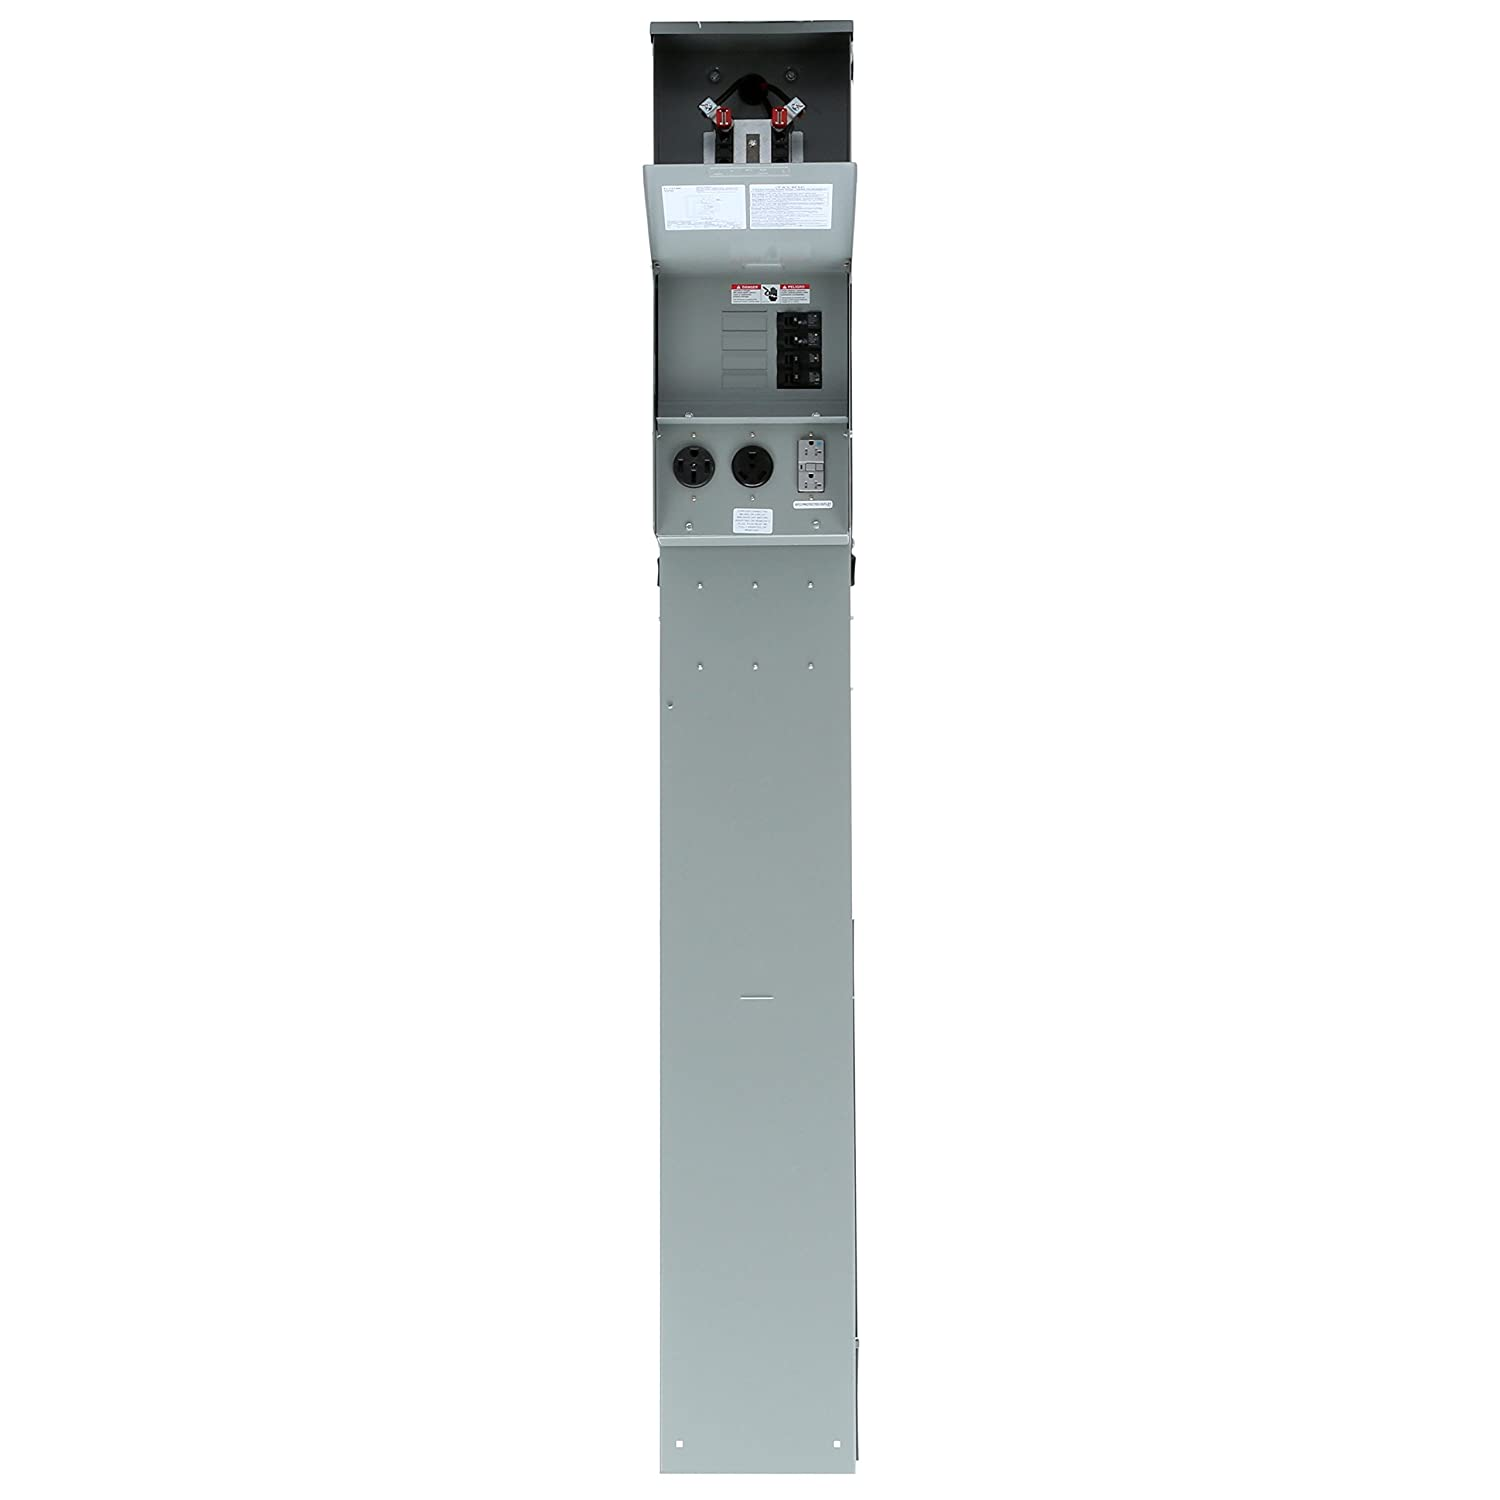 Siemens Tl137Np Talon Temporary Power Outlet Panel Pedestal mit ein 20, 30, und 50-Amp Receptacle Installed Includes ein Ring Type Meter Socket Provision